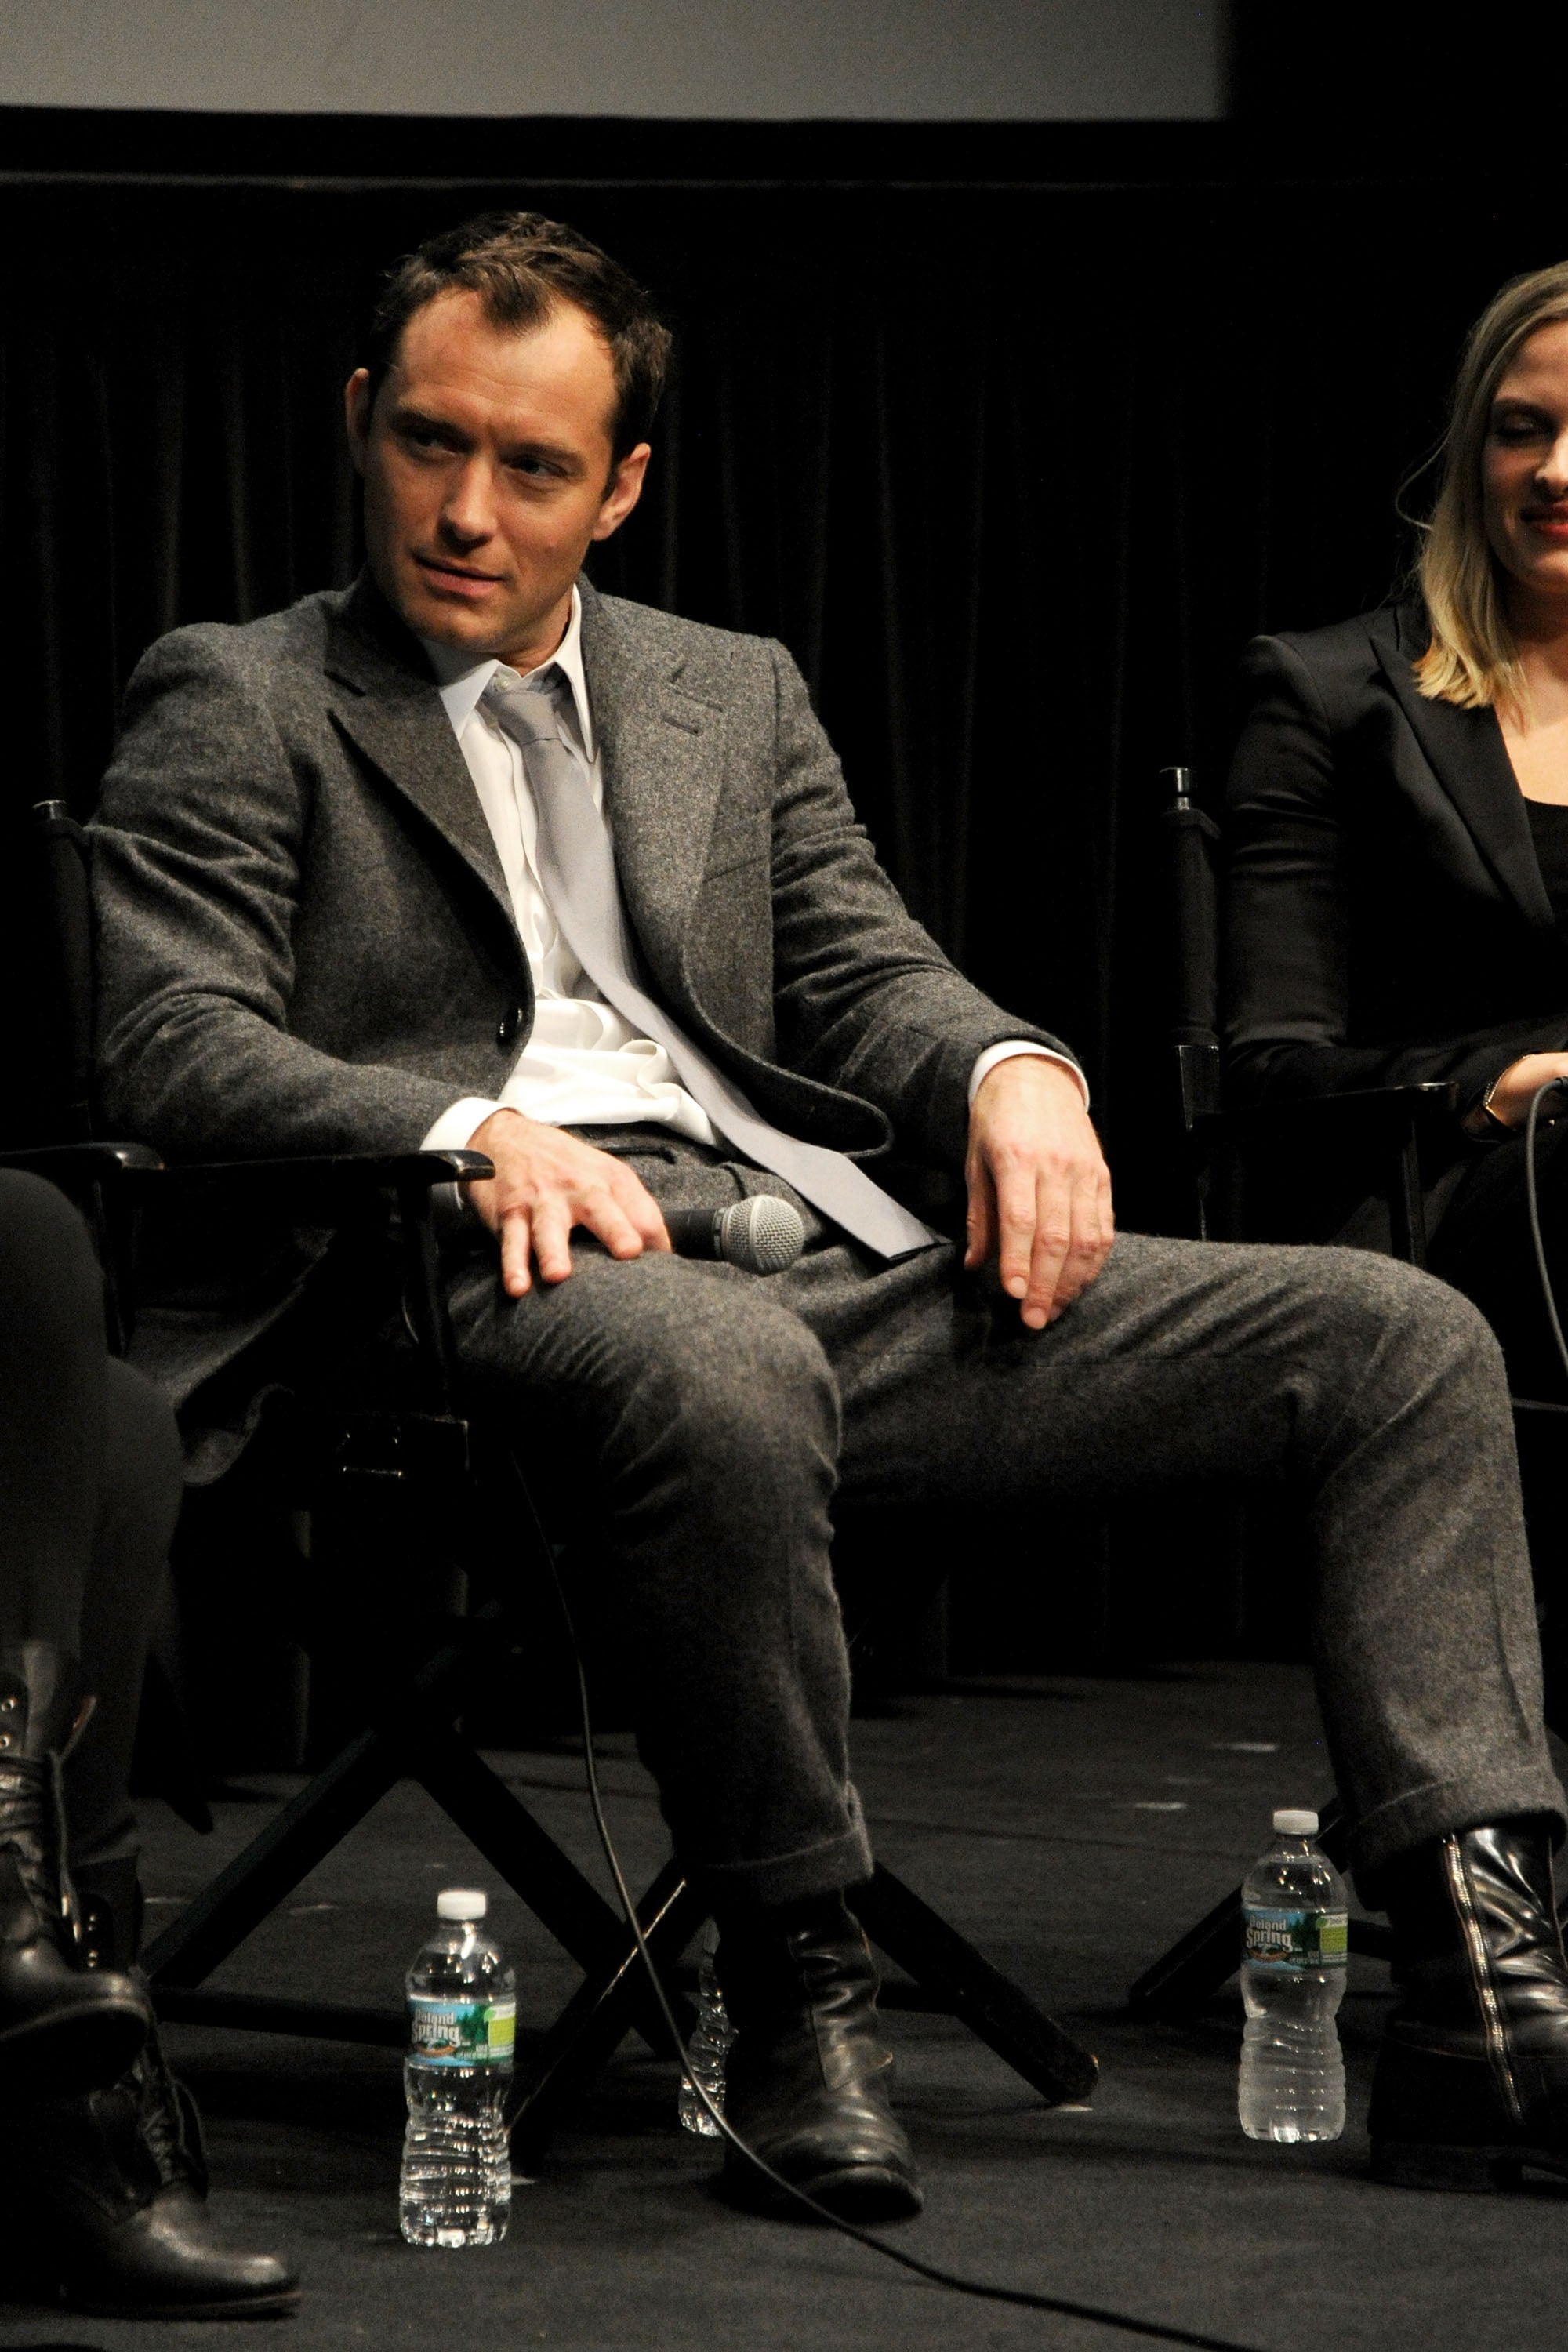 Jude Law wore a suit for the New York screening.